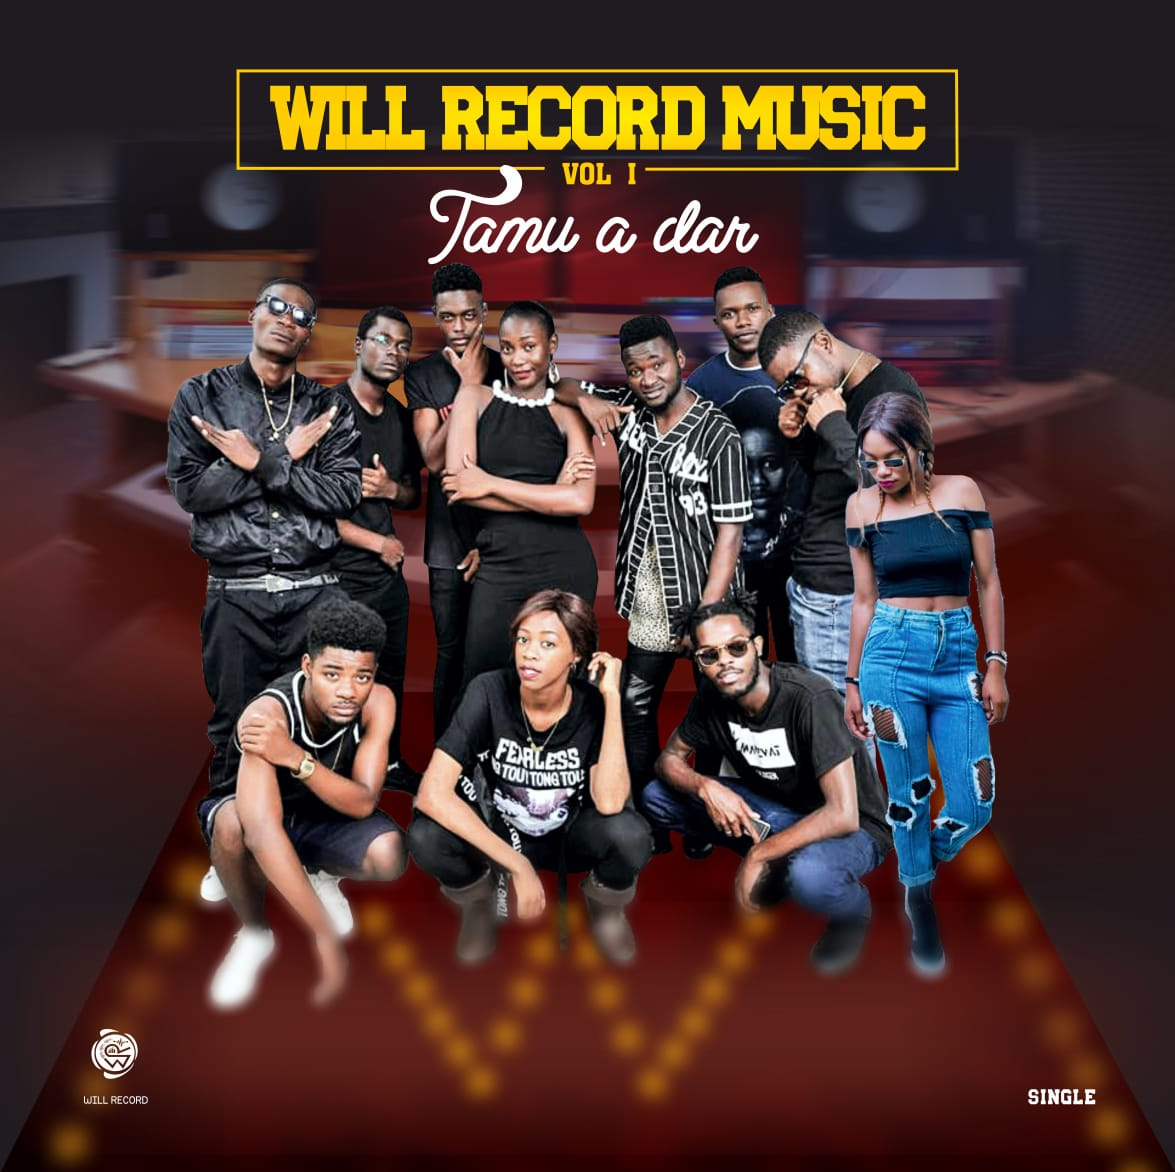 TAMU A DAR - WILL RECORD MUSIC